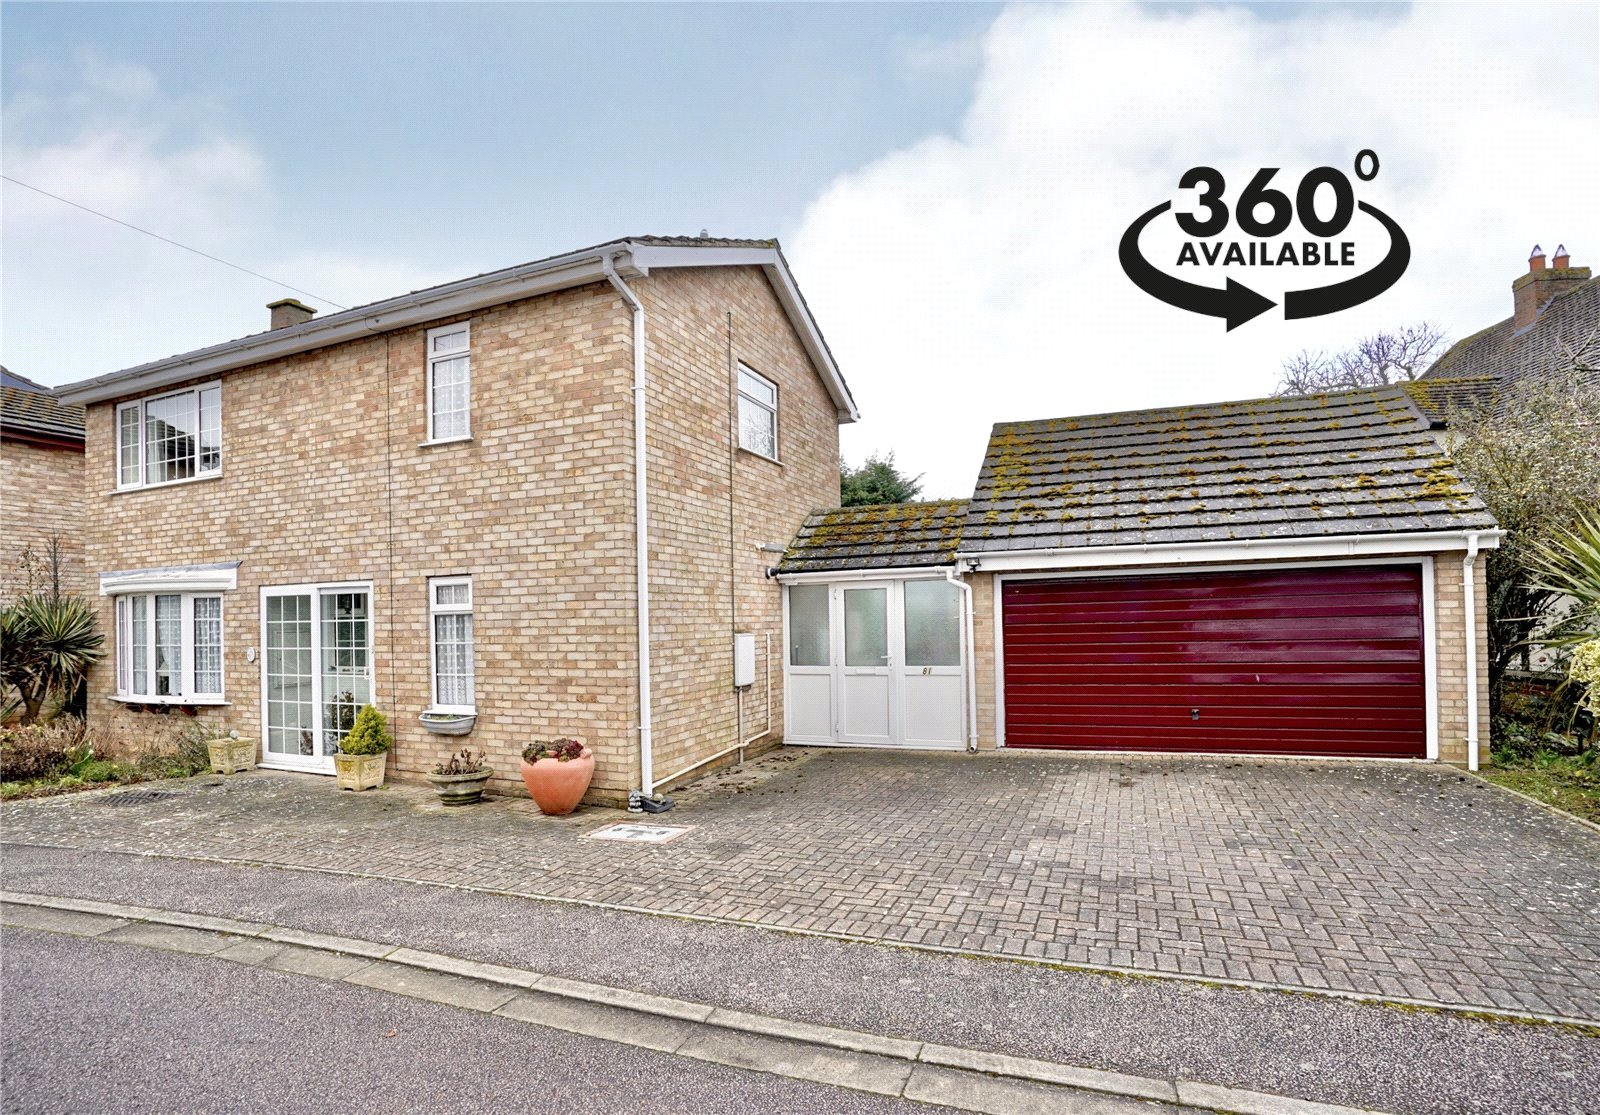 3 bed house for sale in Eaton Ford, PE19 7AL, PE19